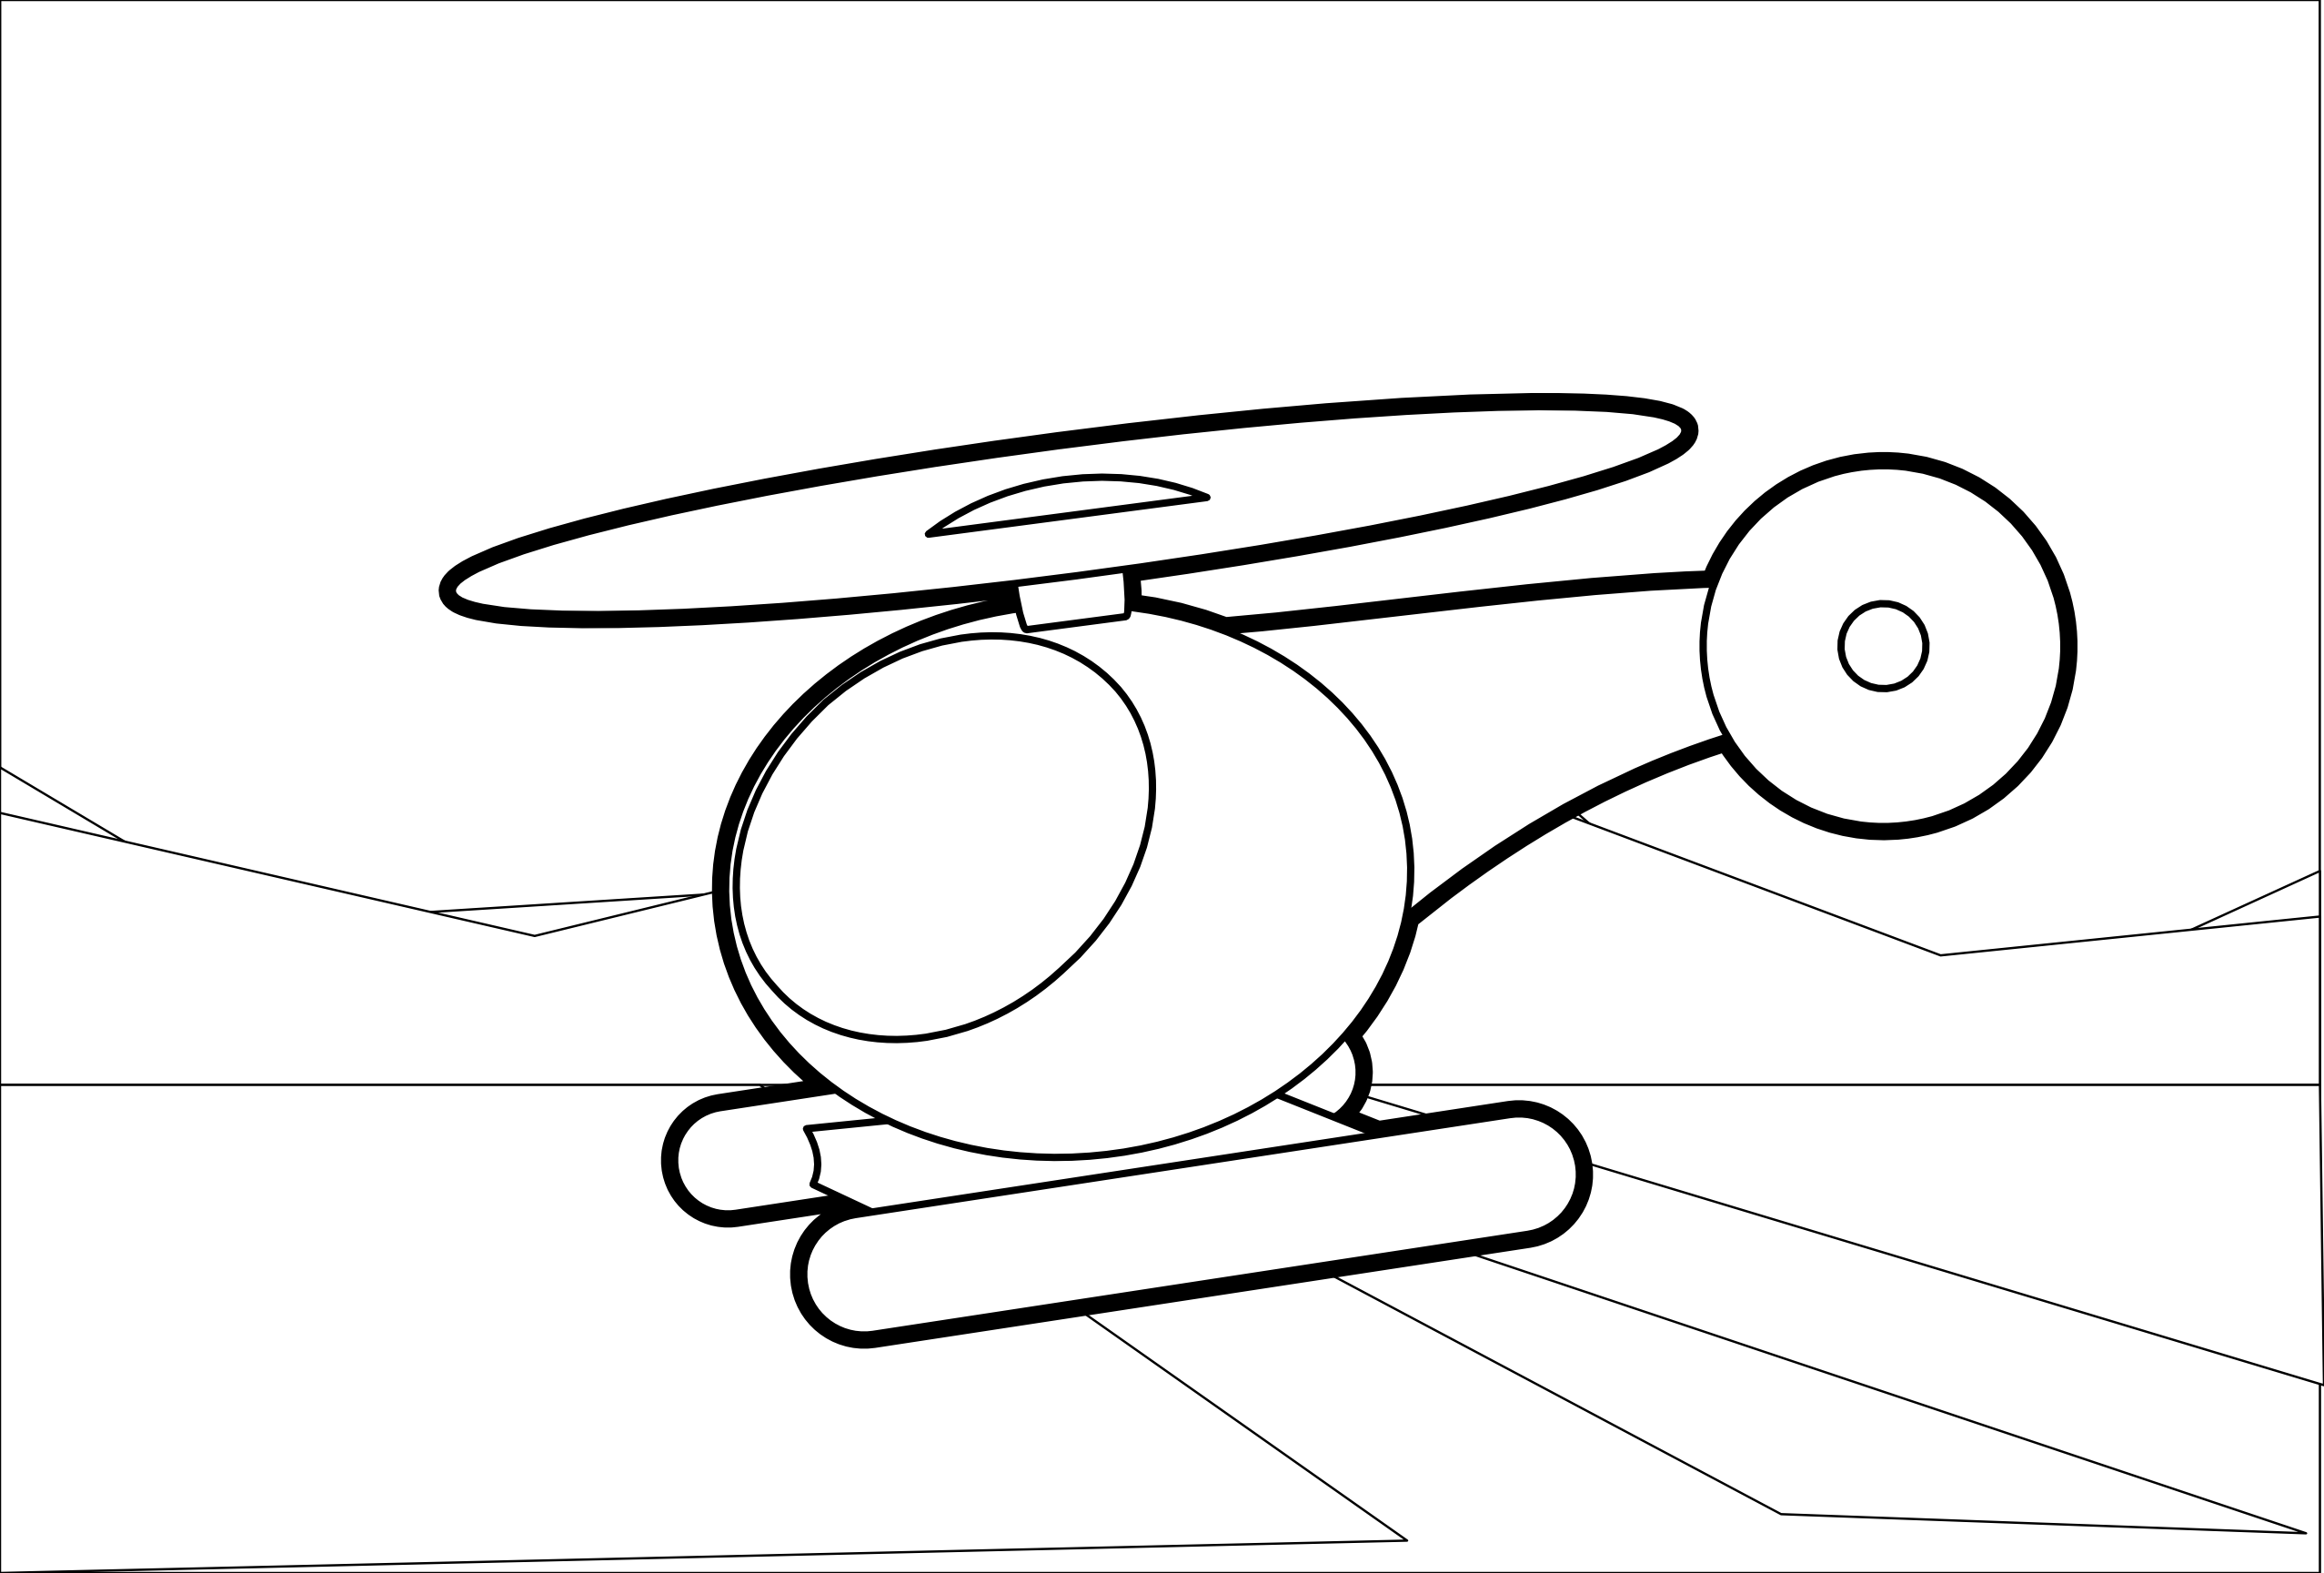 Helicopter 2 Black White Line Art Scalable Vector Graphics SVG ...